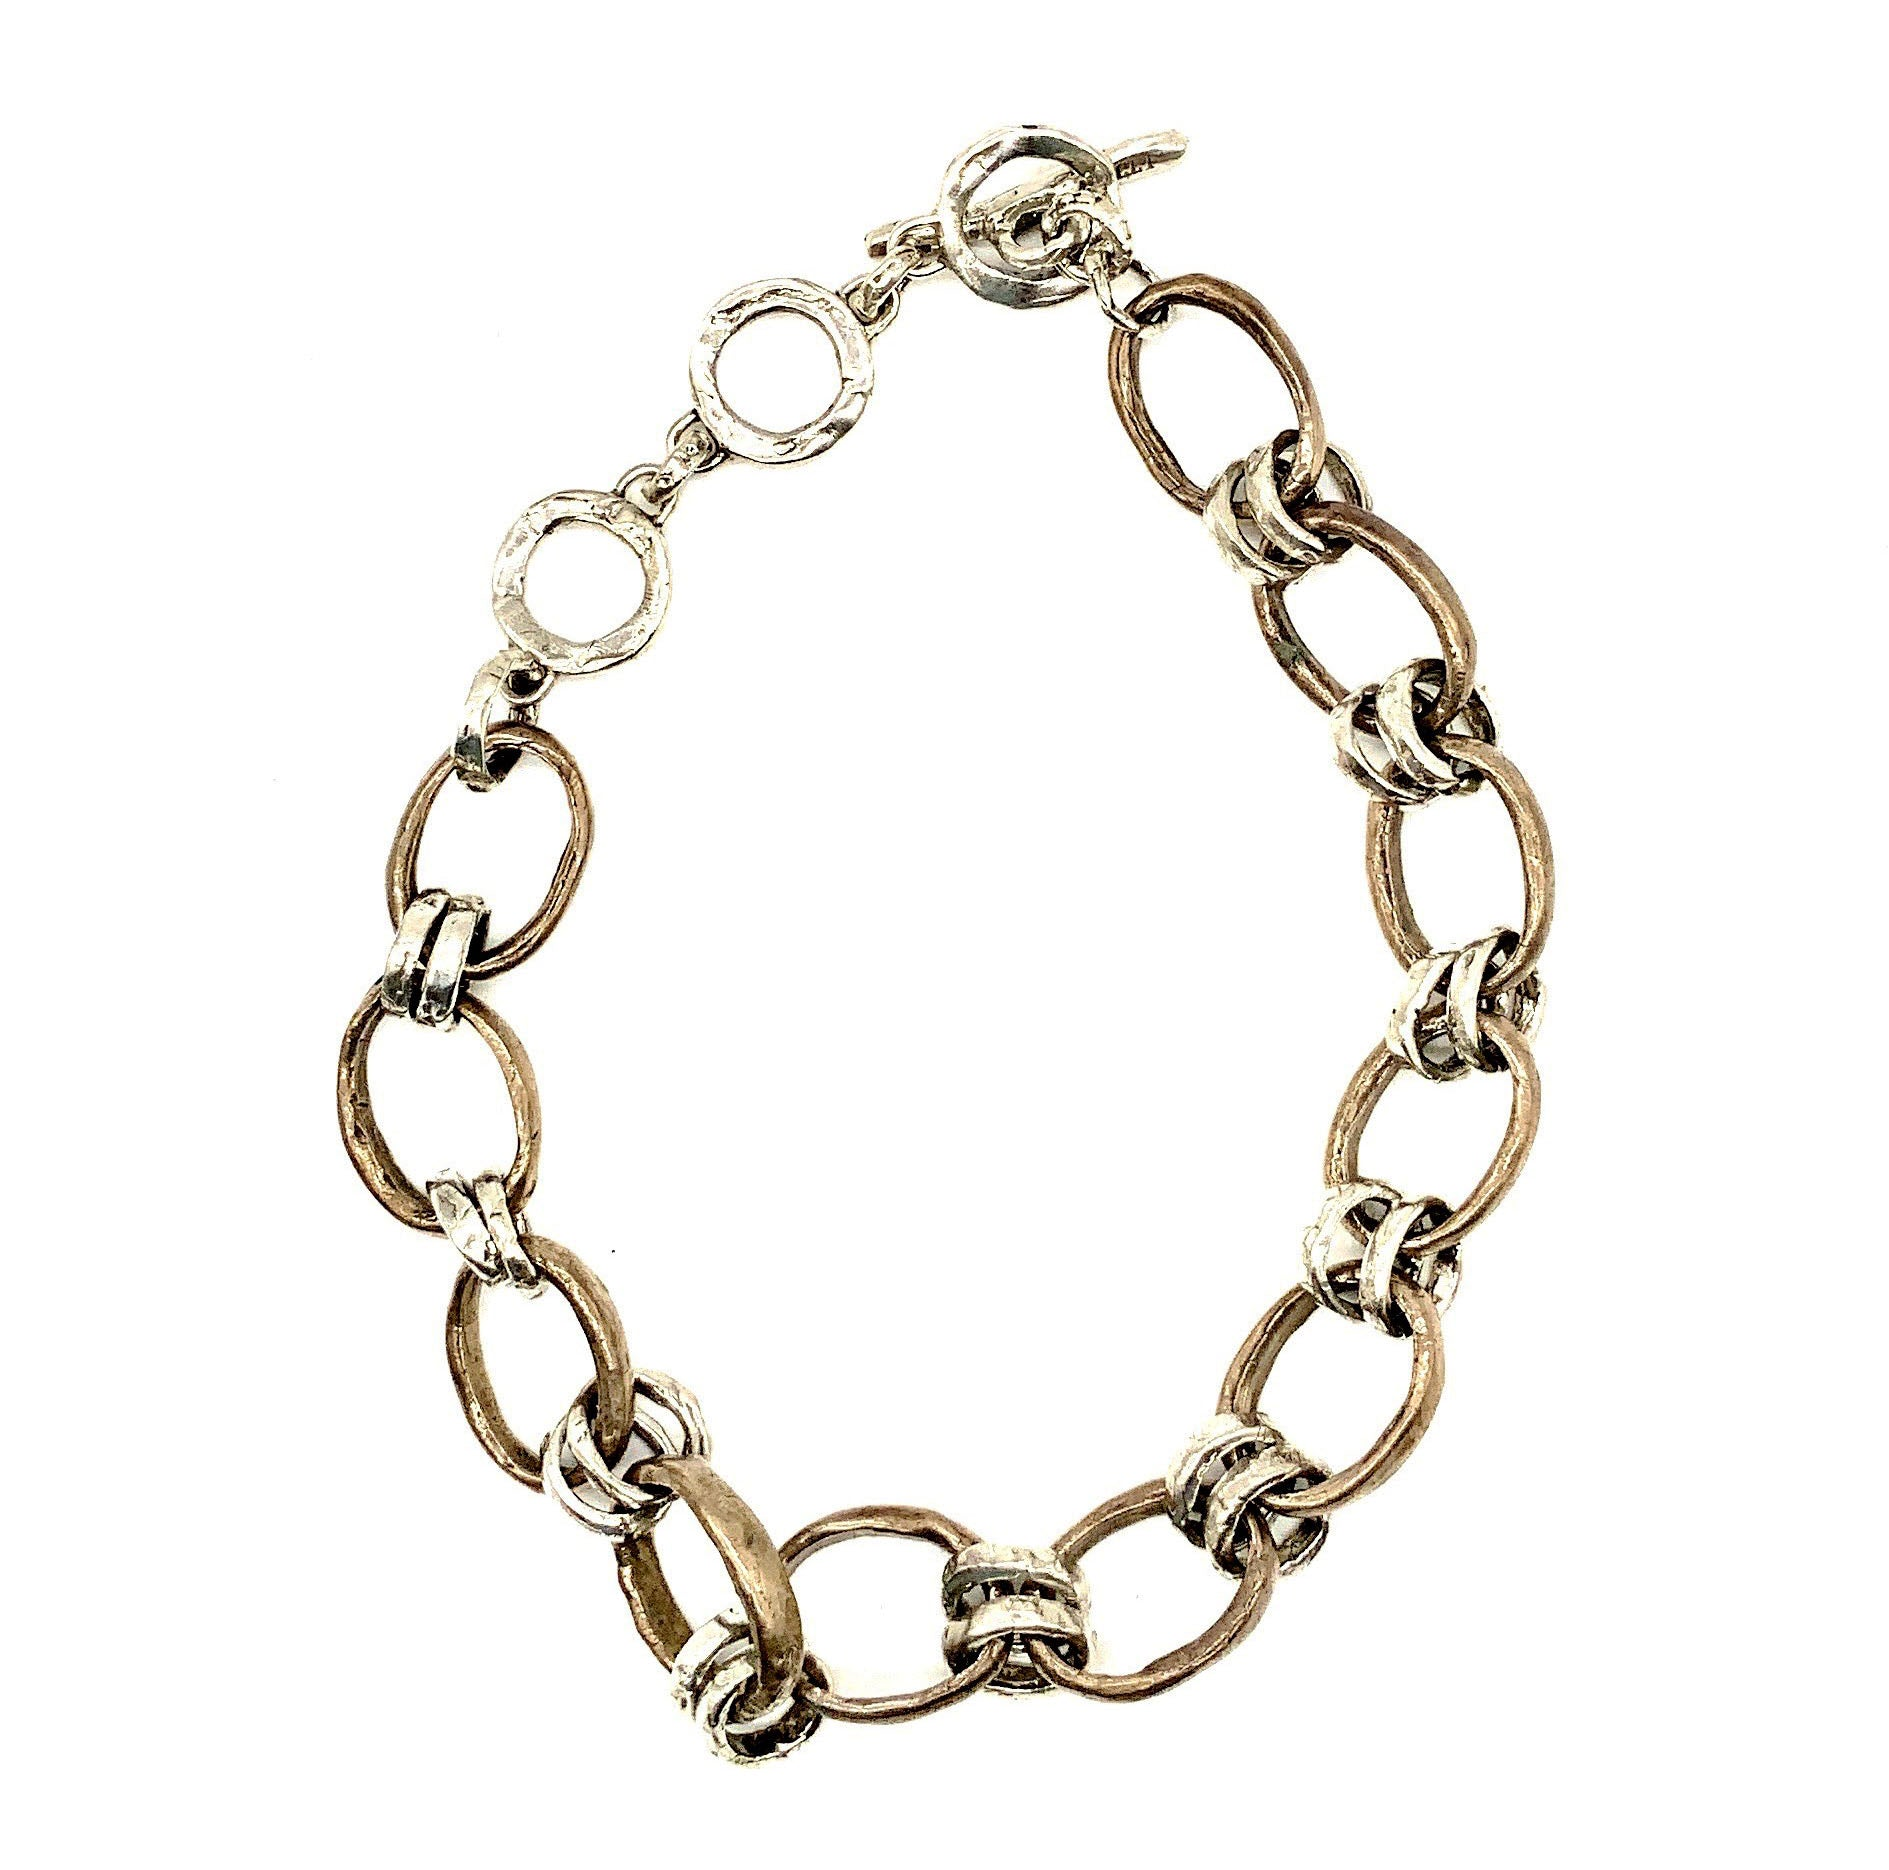 Mixed Metal Circle Chain Necklace